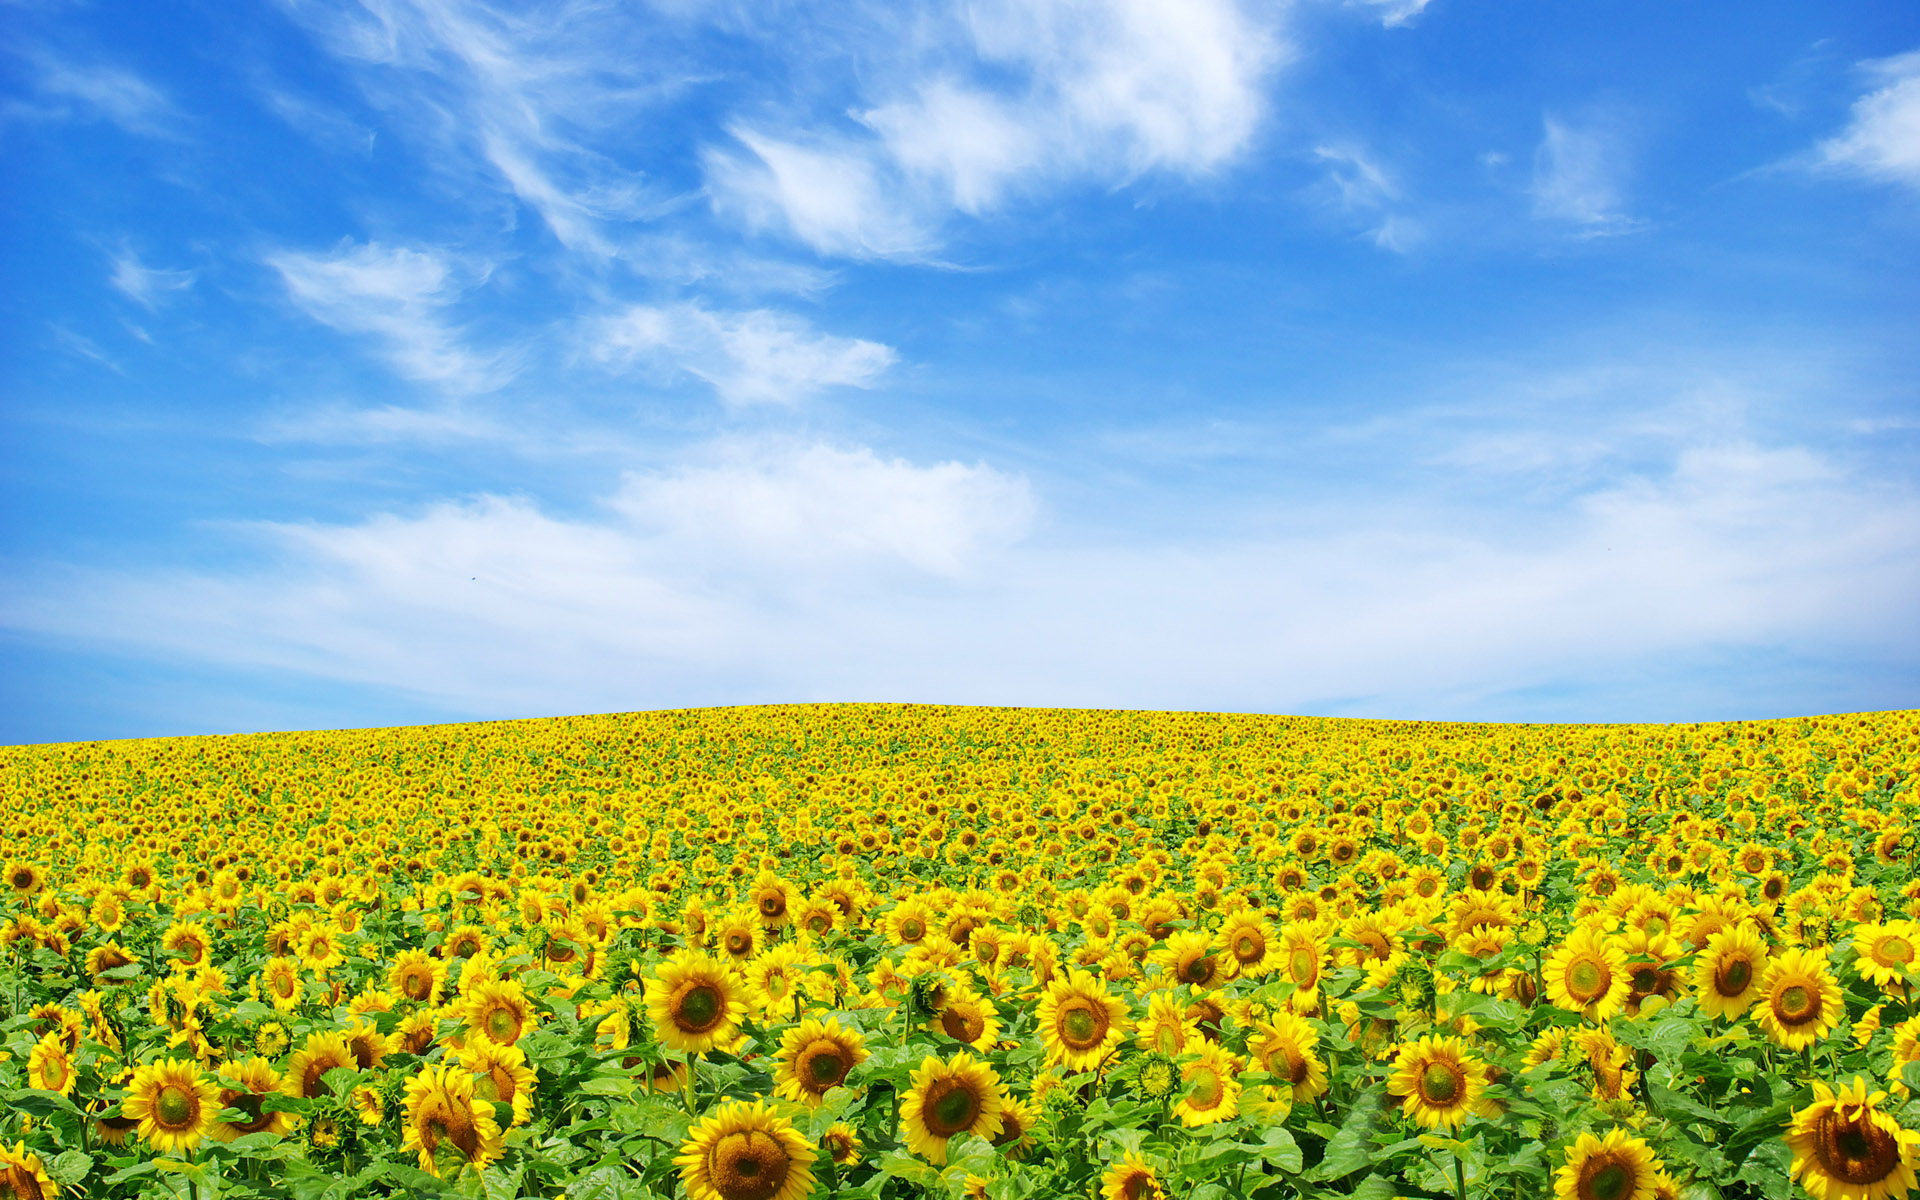 Free Scenery Wallpaper  A Seemingly Endless Sunflower Landscape, Fit